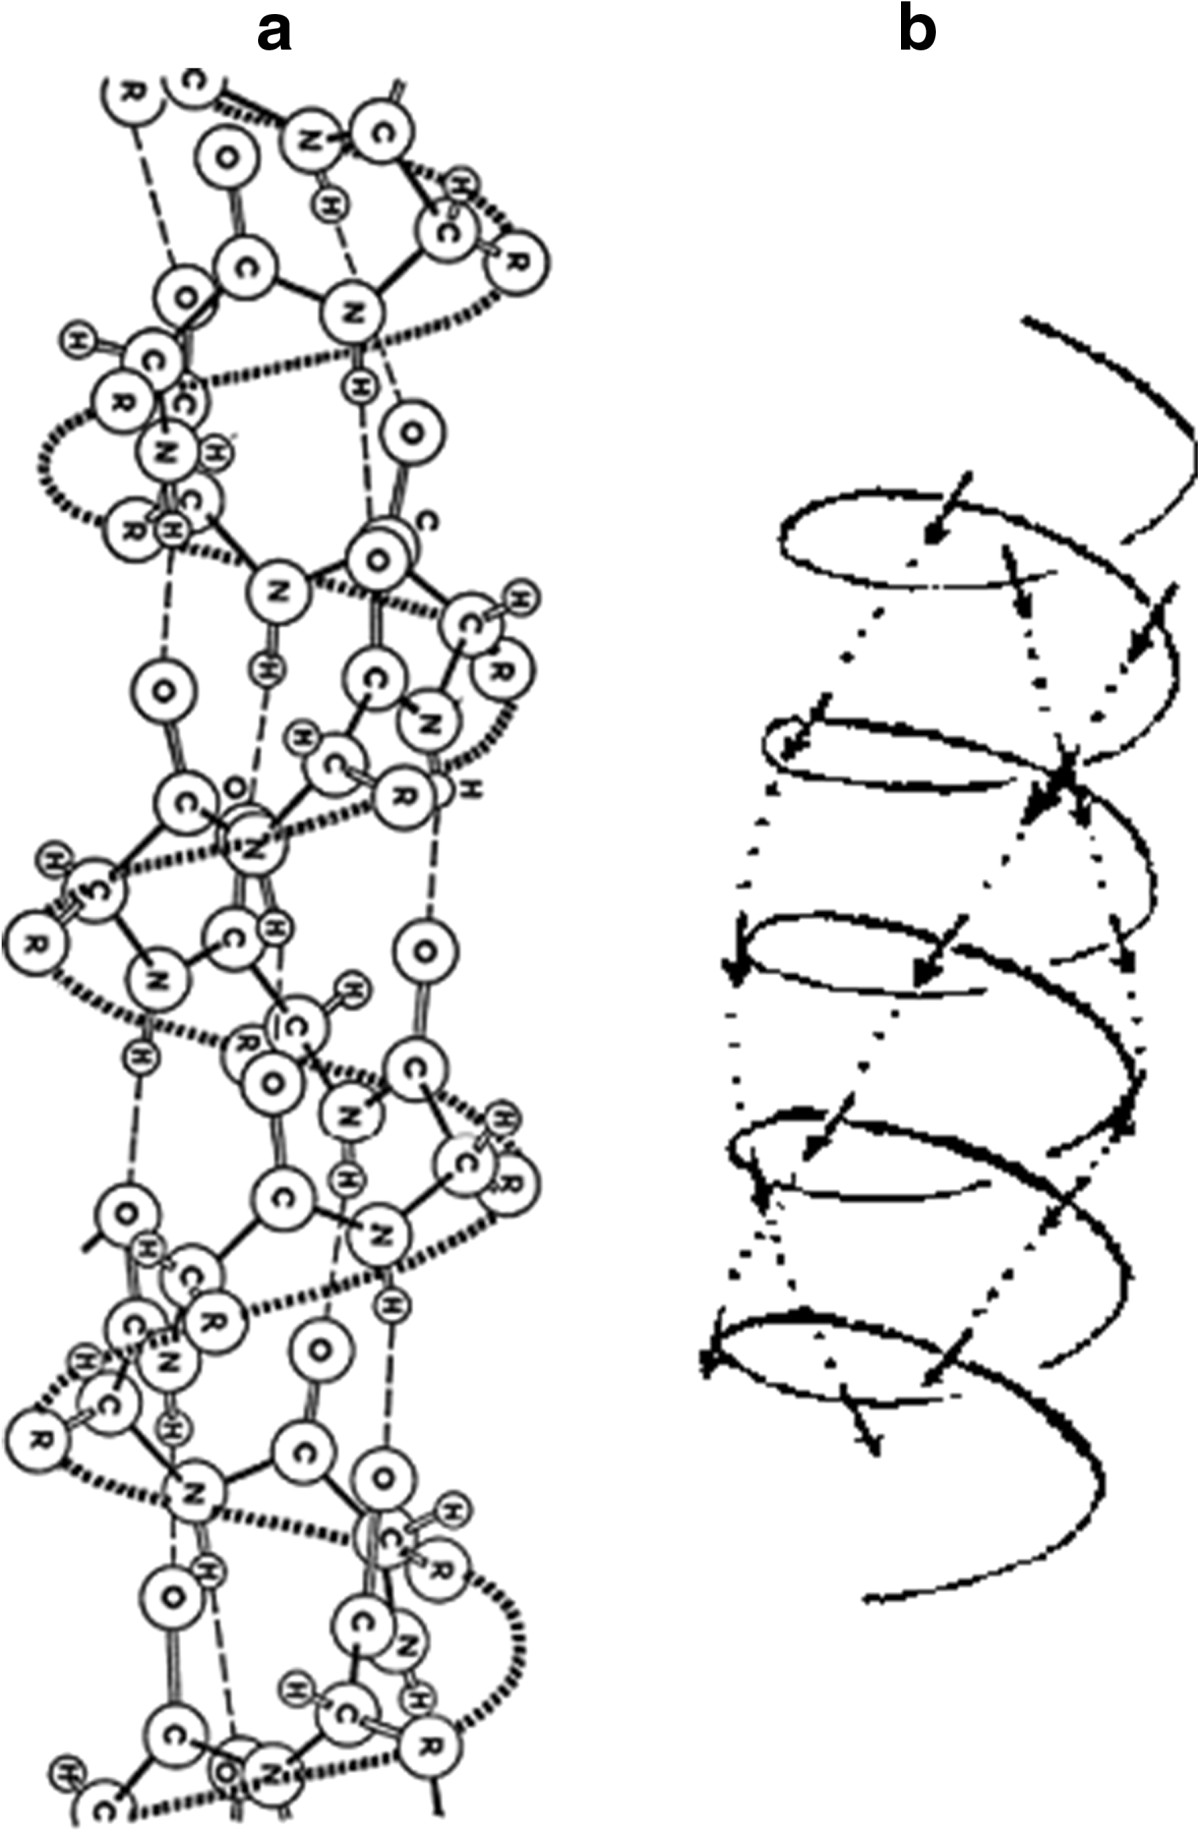 http://static-content.springer.com/image/art%3A10.1186%2F1556-276X-9-200/MediaObjects/11671_2013_Article_1983_Fig1_HTML.jpg